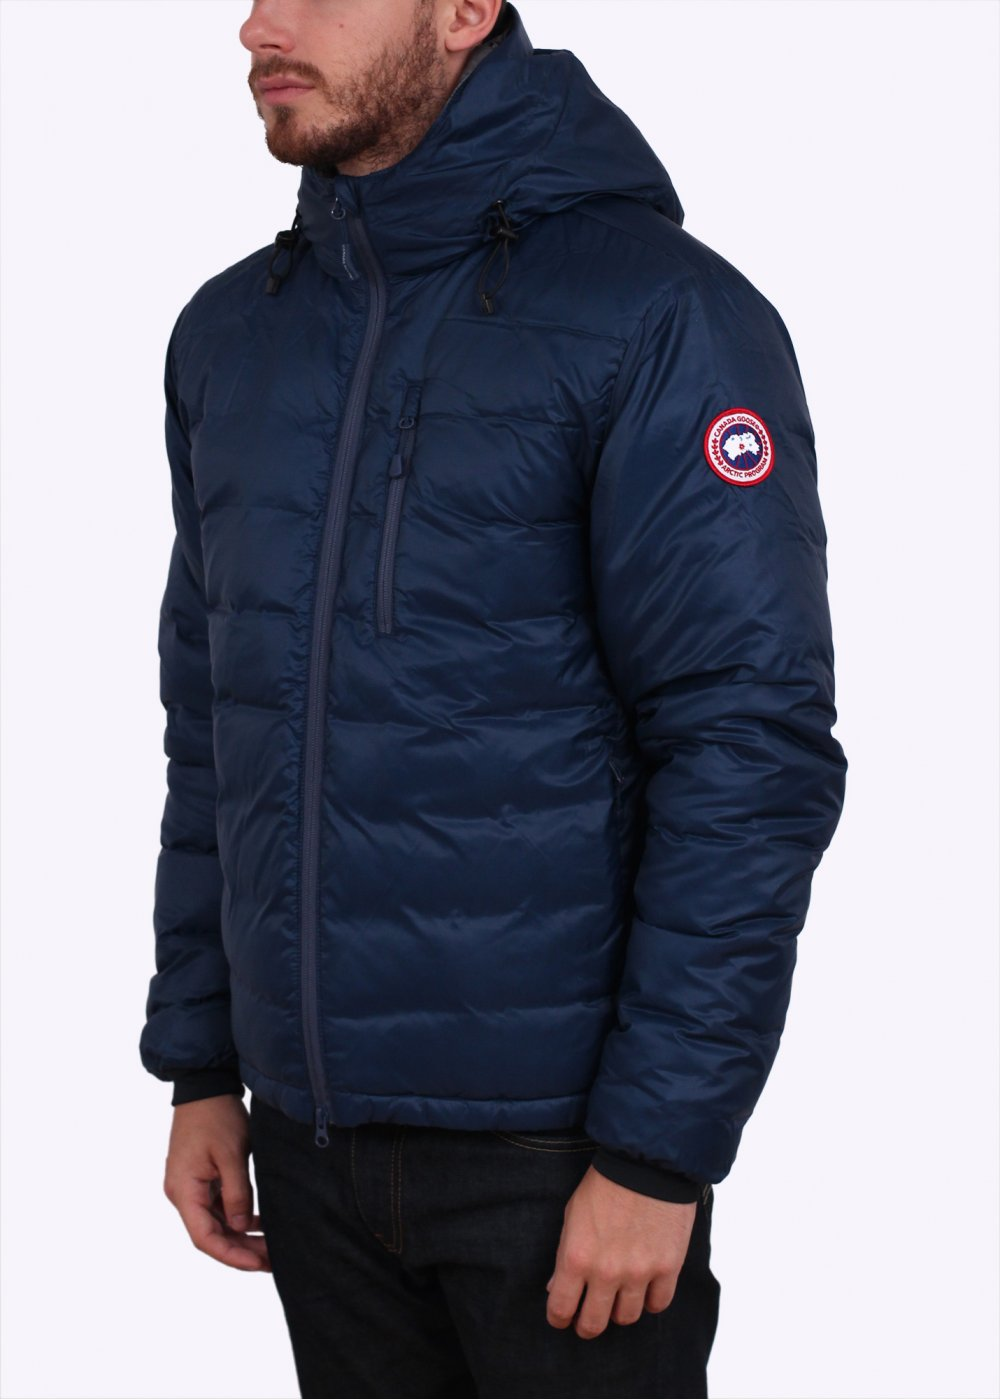 4115c2c54a0 canada goose jacket uk